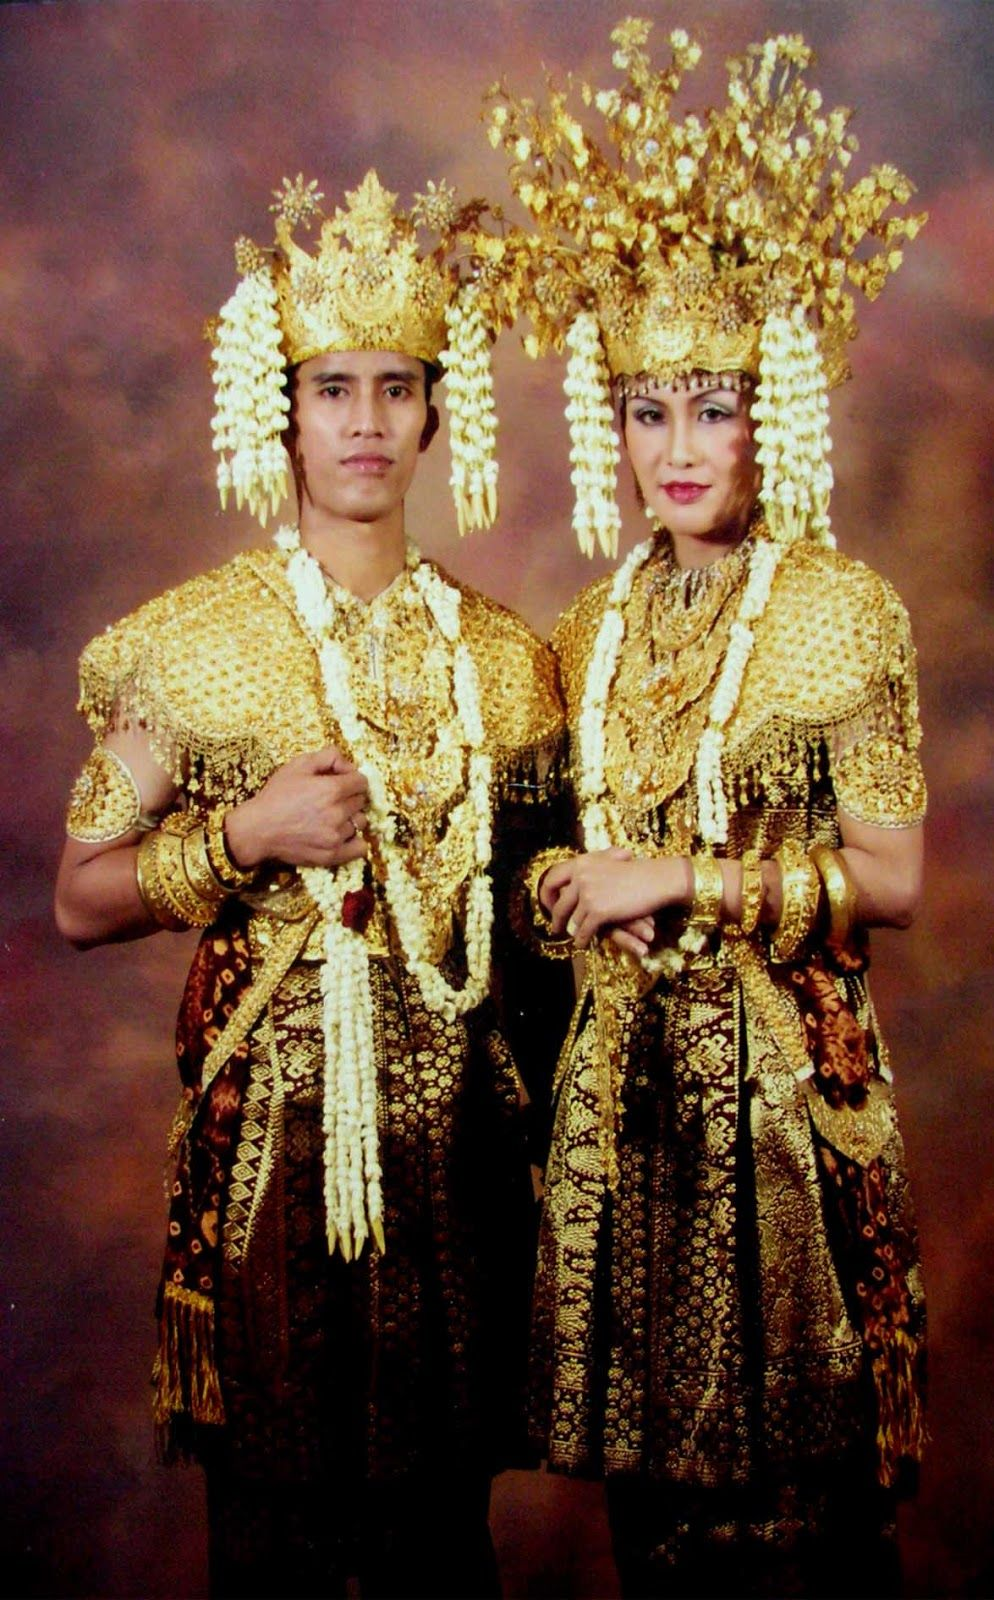 pengantin kalimantan - Penelusuran Google  Traditional outfits